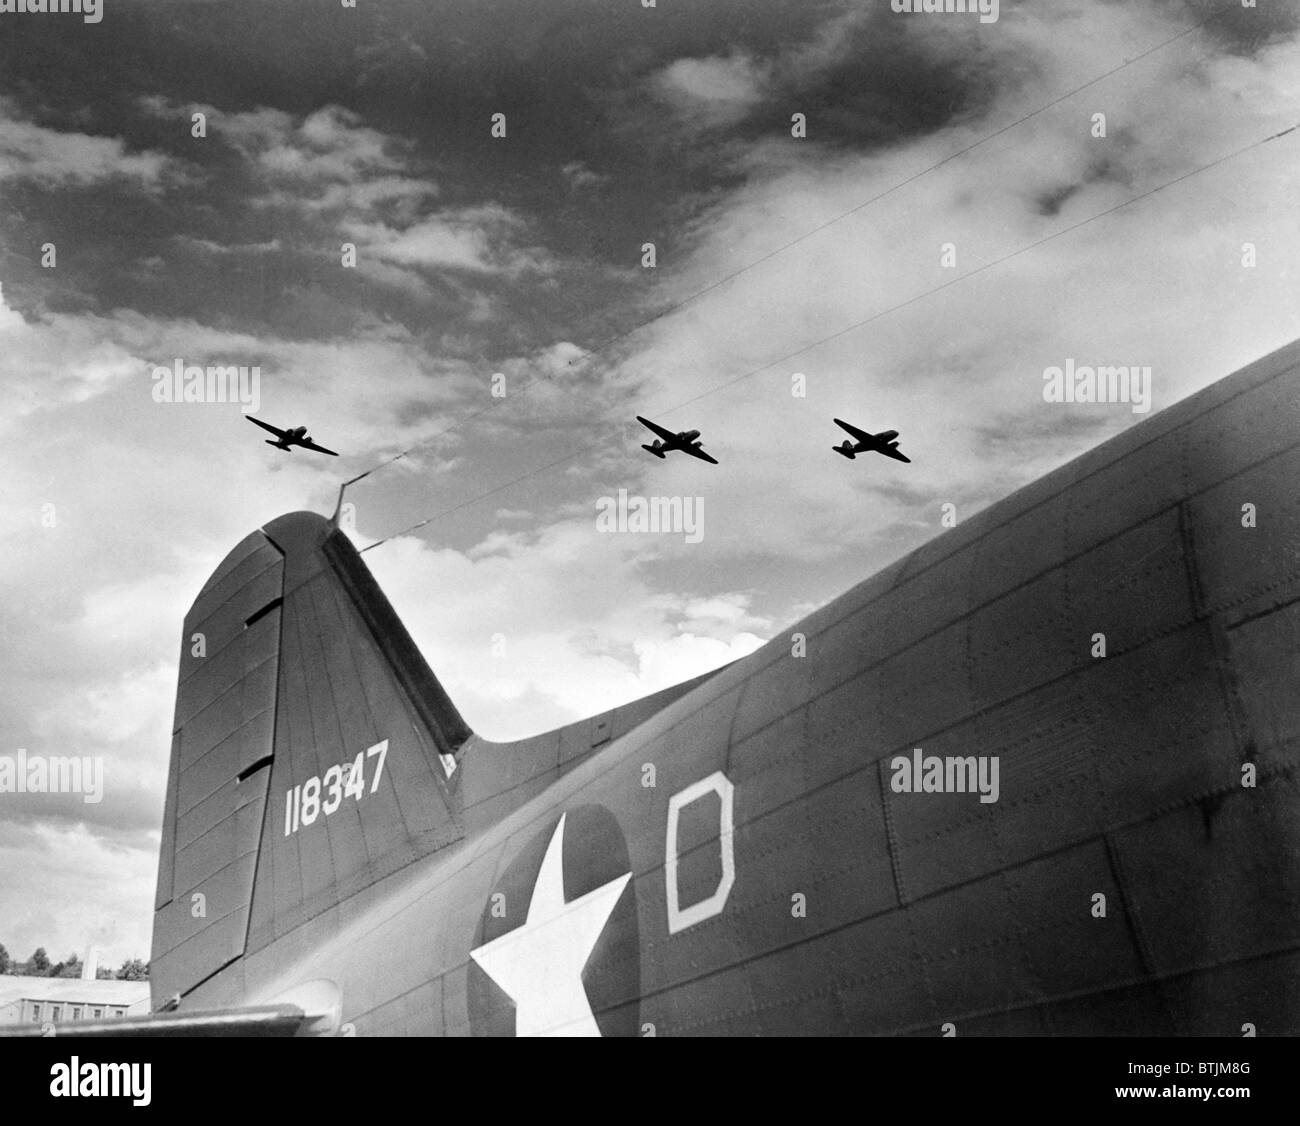 U.S. paratroopers in flight manuevers somewhere over England, ca. 1943-1945 - Stock Image